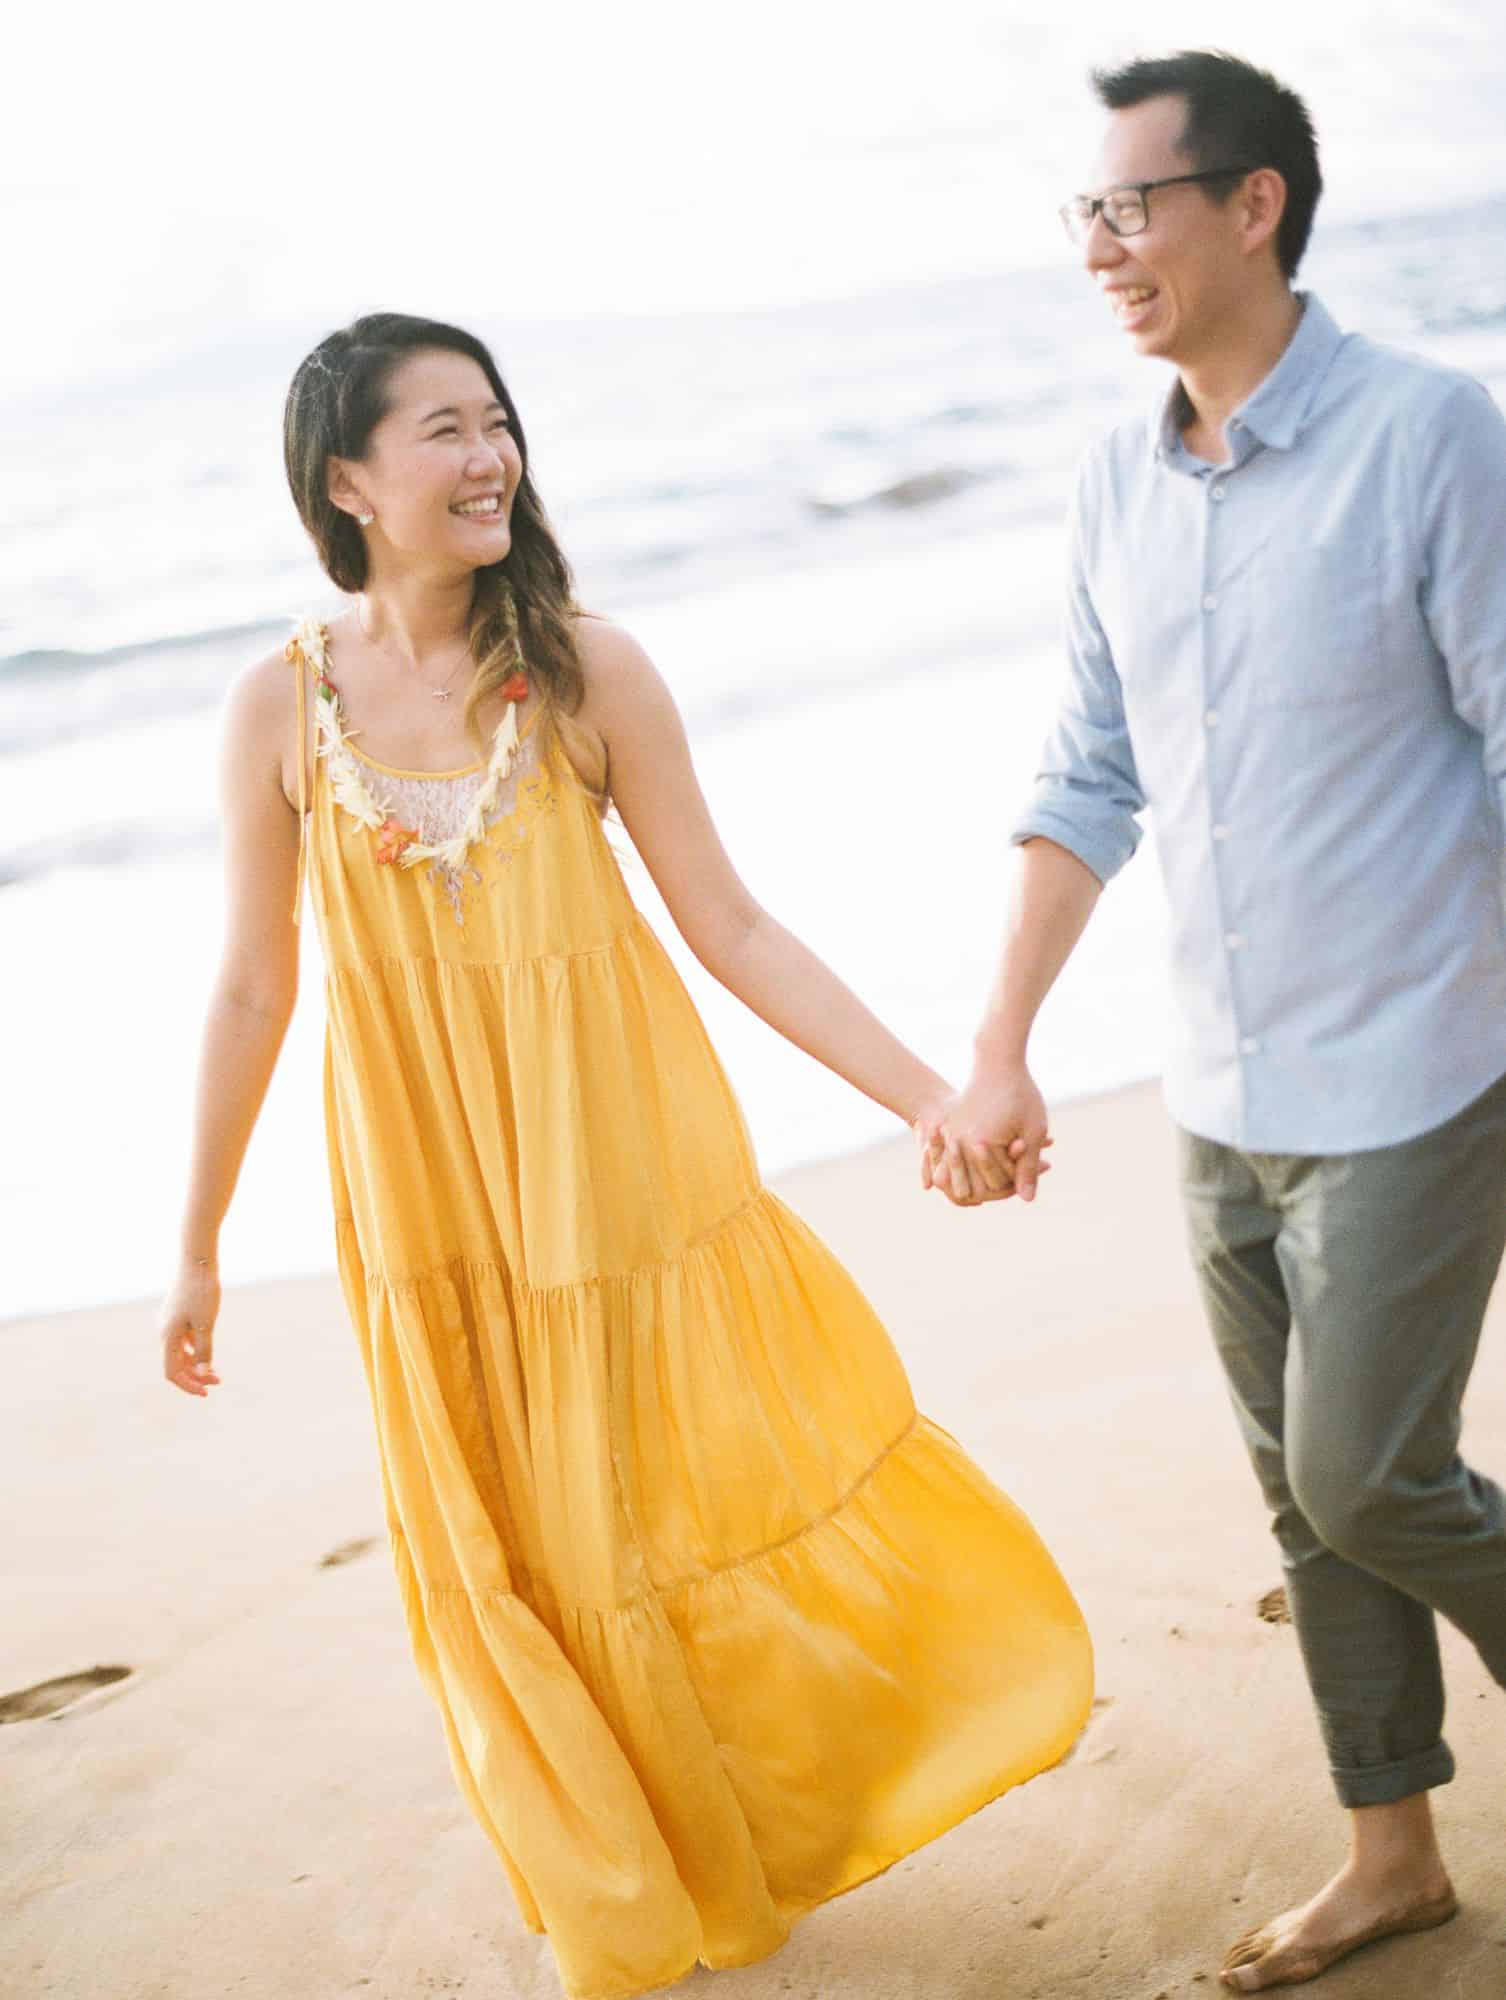 Canadian doctors Molly Lin and Sing-Chi Lam plan to marry later this year, and then serve at a Samaritan's Purse mission hospital in Kenya.